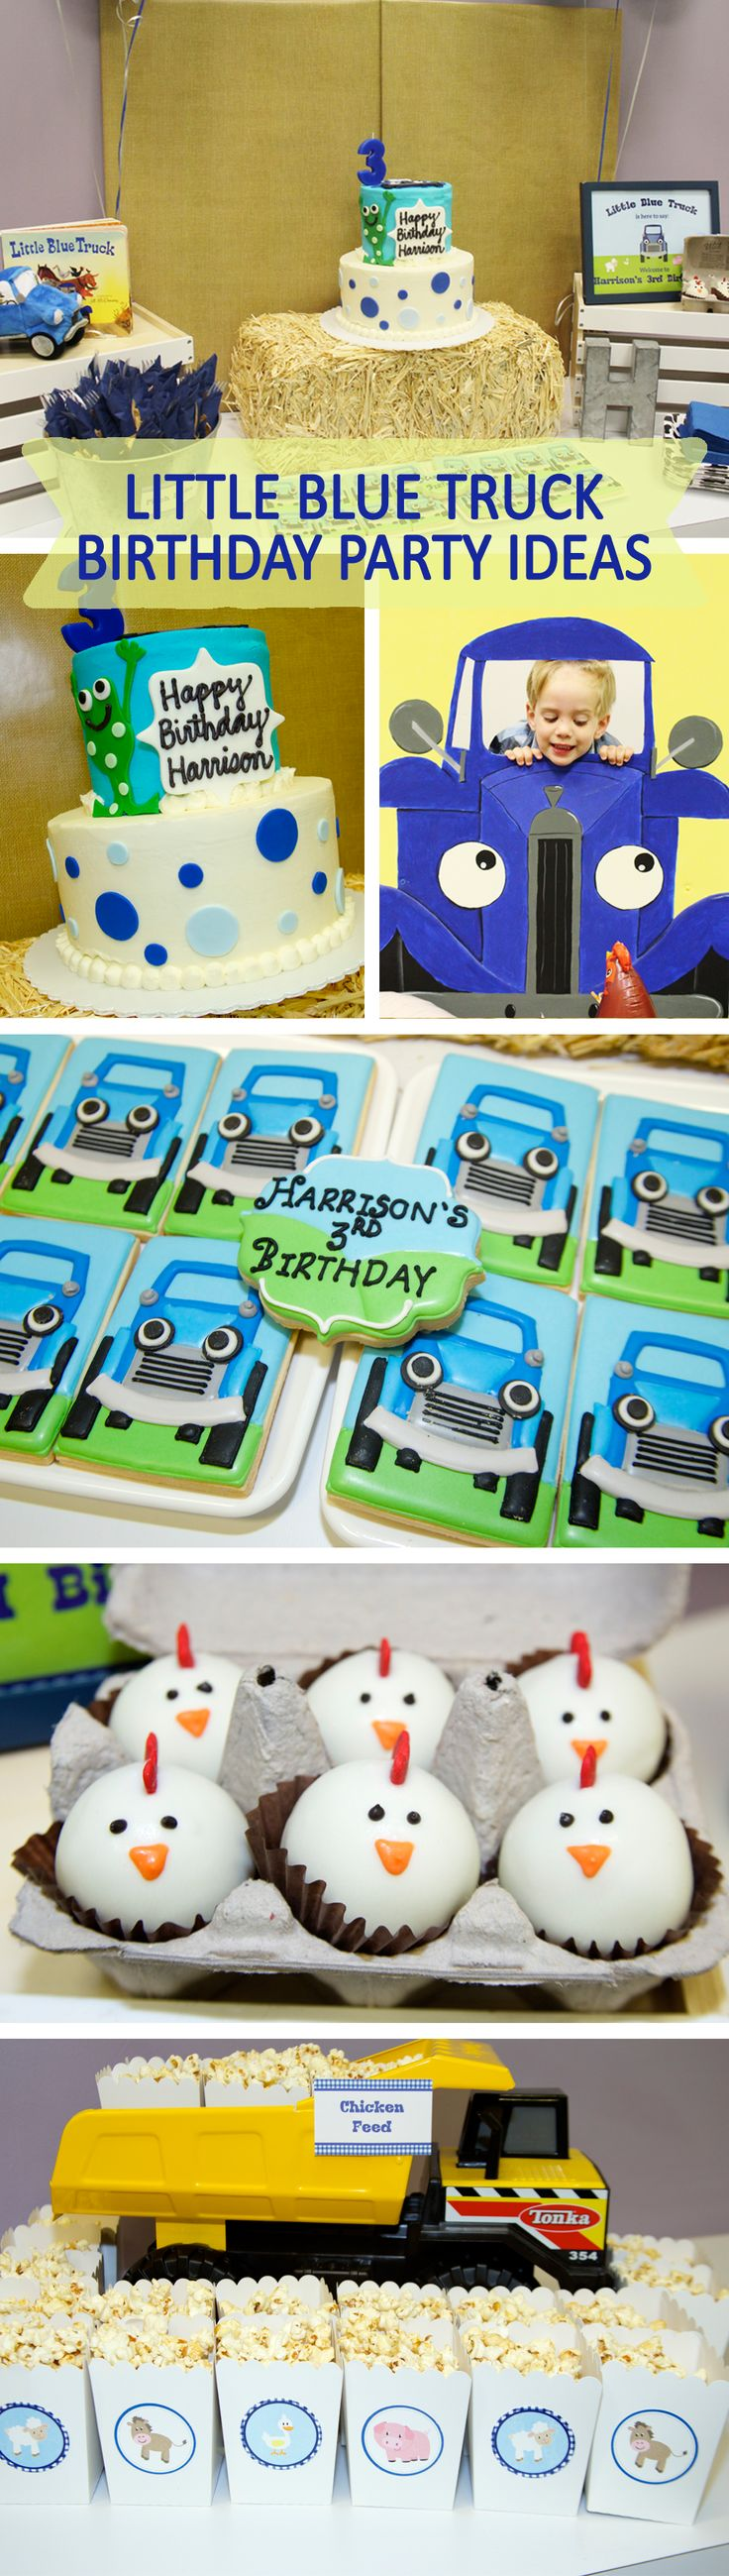 Little Blue Truck Birthday Party Birthday parties Truck